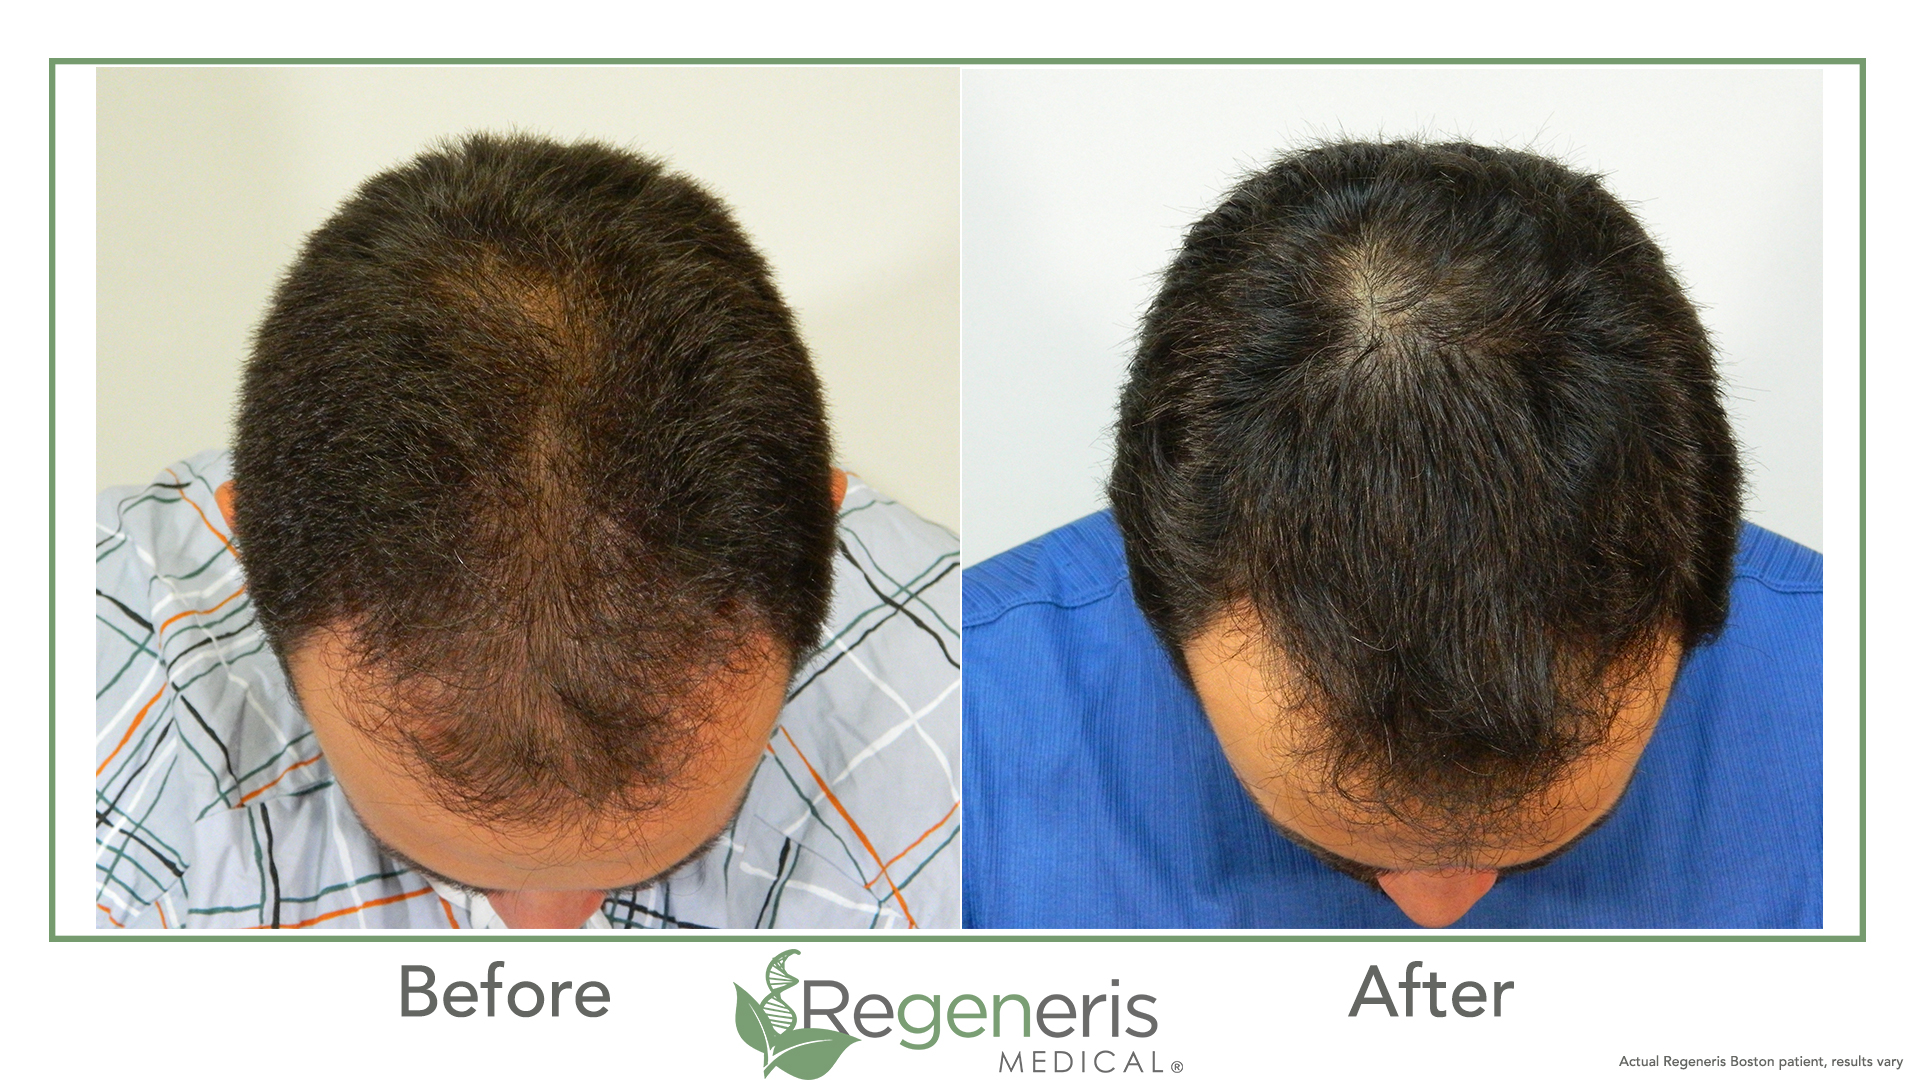 "Regeneris Stem Cell PRP for Hair - Unlock the power of your own cells to grow hair. A combination of stromal vascular fraction and stem cells derived from fat could be the answer to your hair loss. In 2011, Dr. Welter was the first physician to apply the use of adipose derived stem cells in Stromal Vascular Fraction to stimulate growing hair. Since then he has refined the proprietary Regeneris Stem Cell PRP procedure and continues to research this fascinating field of medicine with members of our physician affiliate team. According to Dr. Welter, ""Biocellular Technology is transforming the field of hair restoration. Within a few years, using the technology we are developing, hair loss will be a thing of the past."""